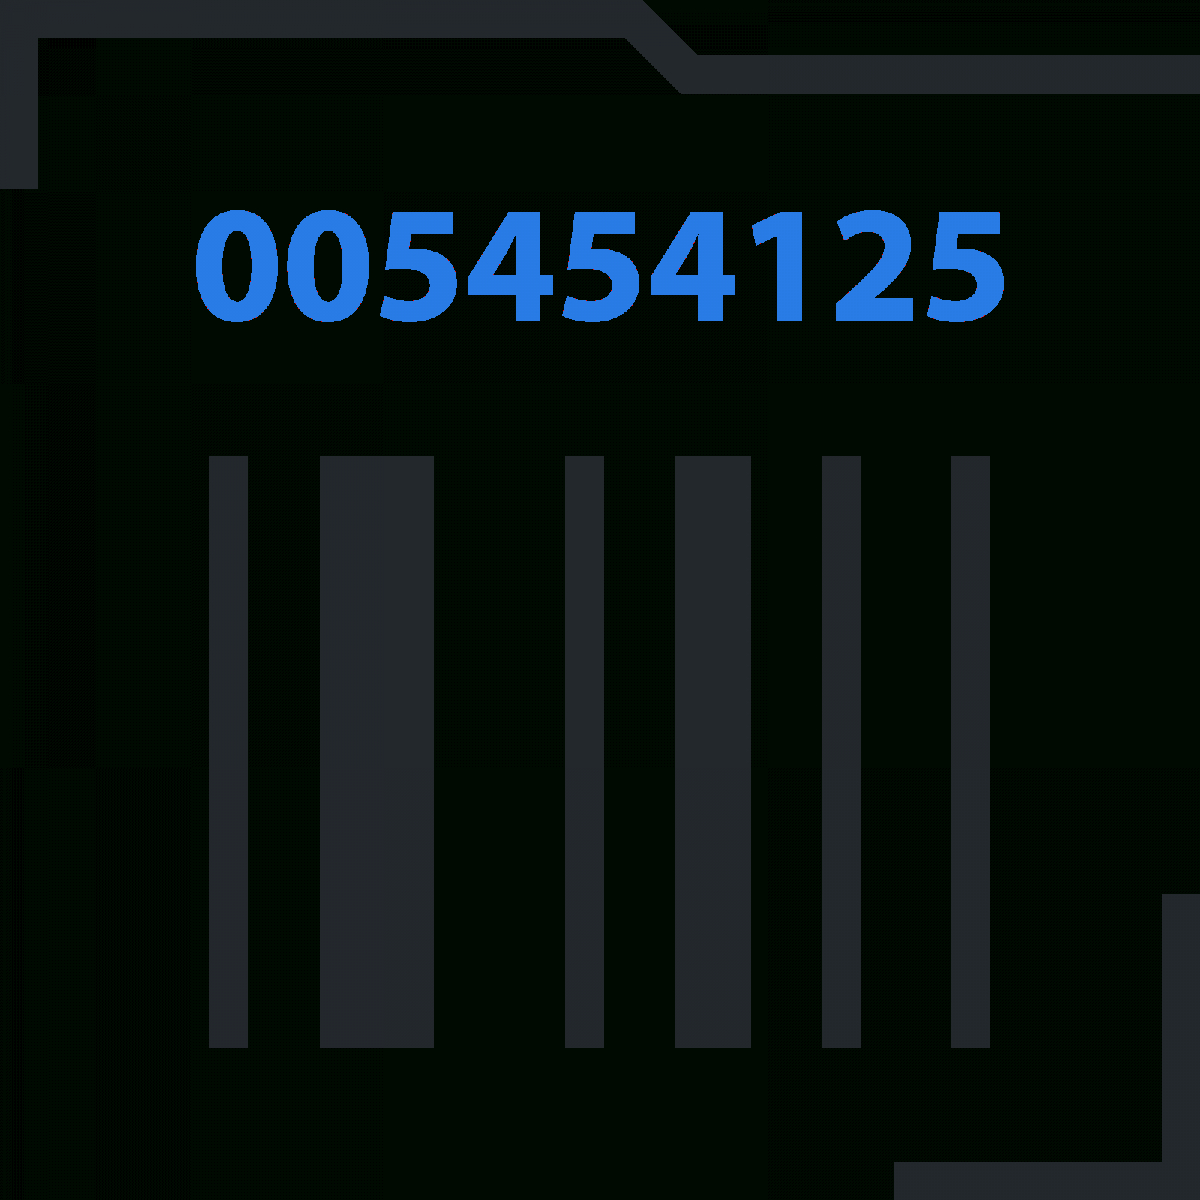 Zbar Spreadsheet With Regard To Read Barcodes  Qrcodes From Pdfs, Scanned Documents And Images